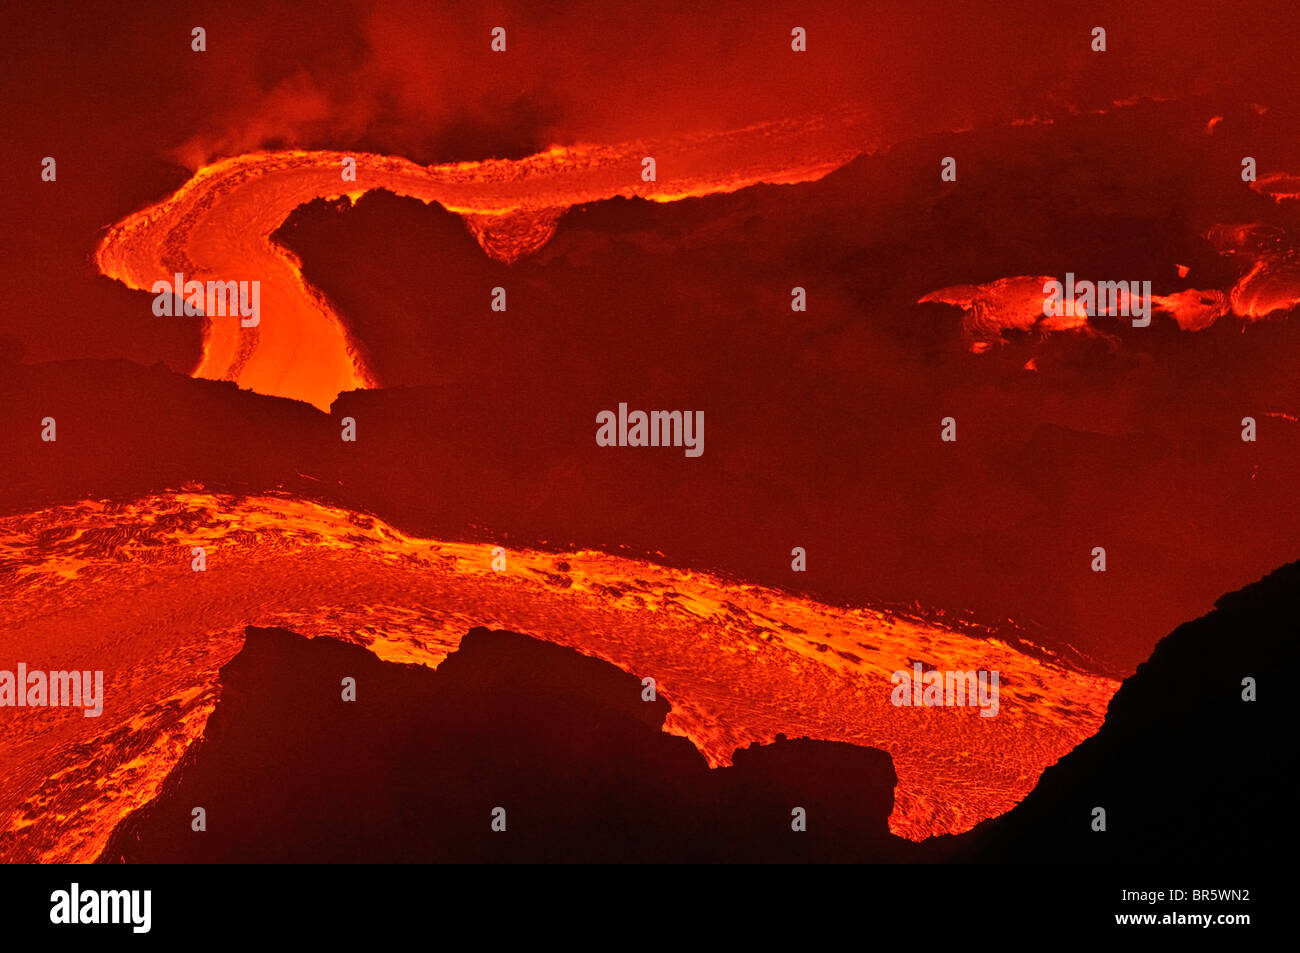 River of molten lava flowing to the sea, Kilauea Volcano, Hawaii Islands, United States - Stock Image